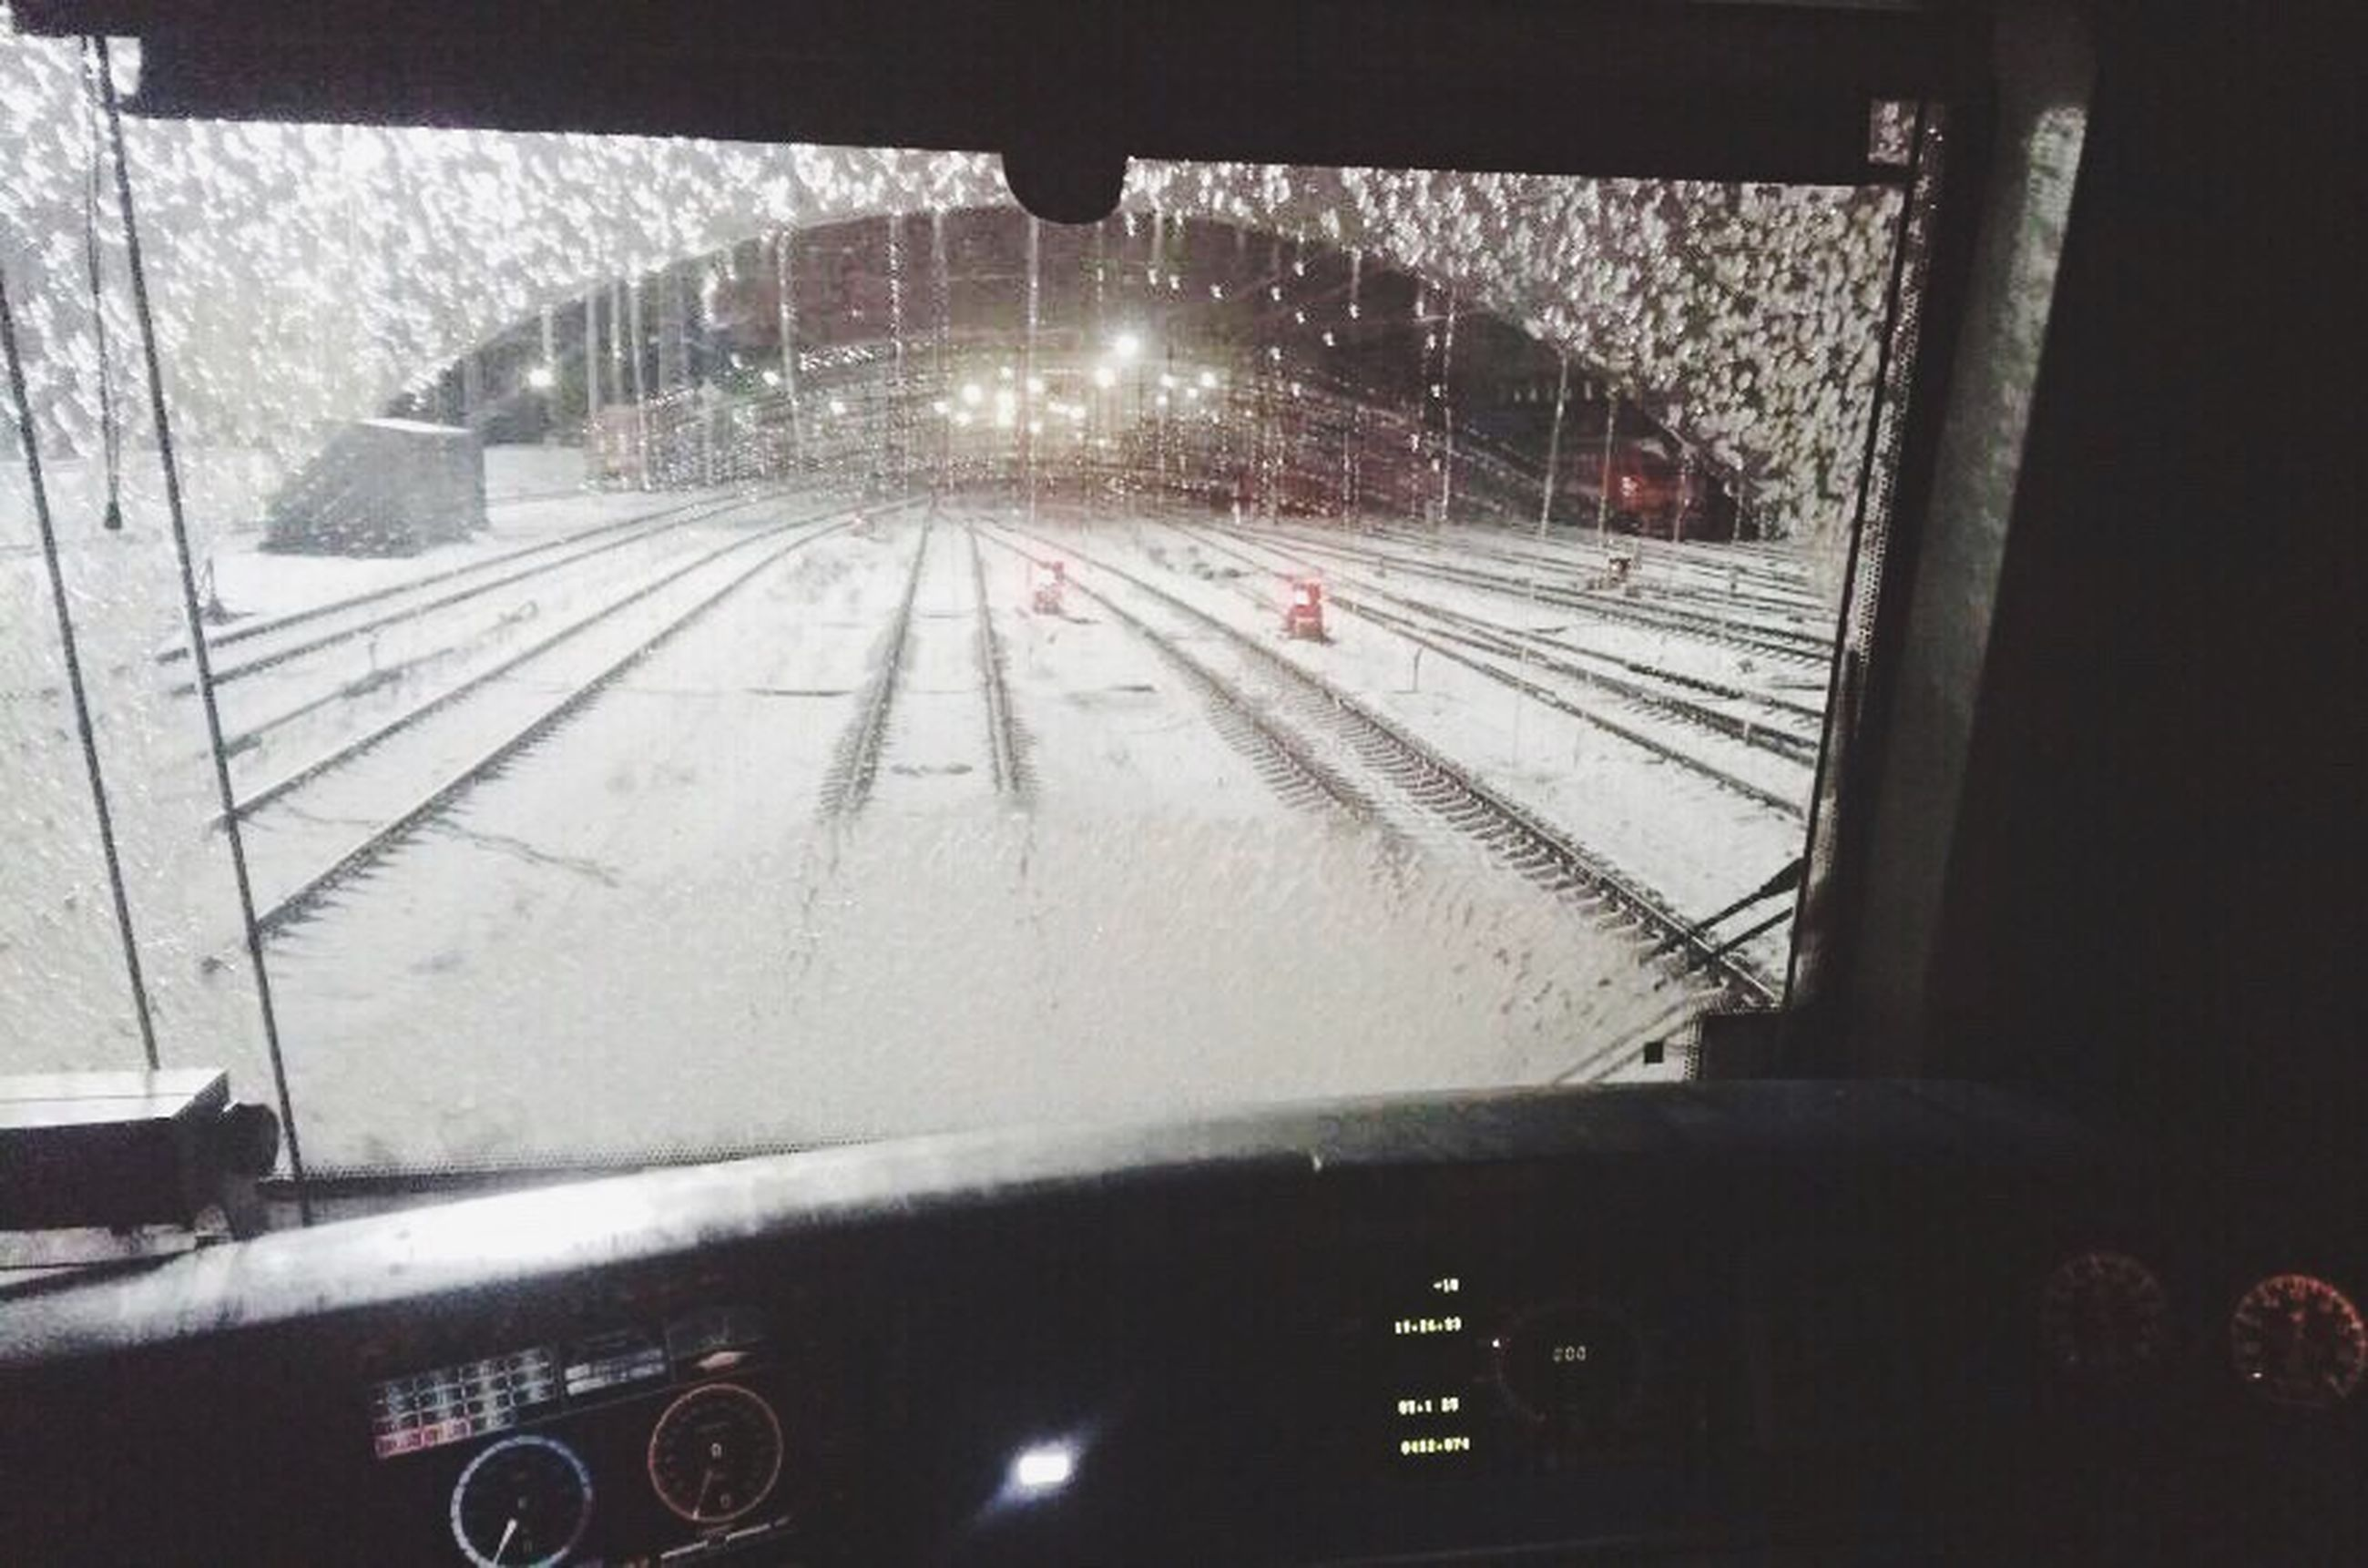 transportation, vehicle interior, windshield, mode of transport, car, land vehicle, travel, weather, window, car interior, no people, journey, cold temperature, snow, winter, indoors, day, close-up